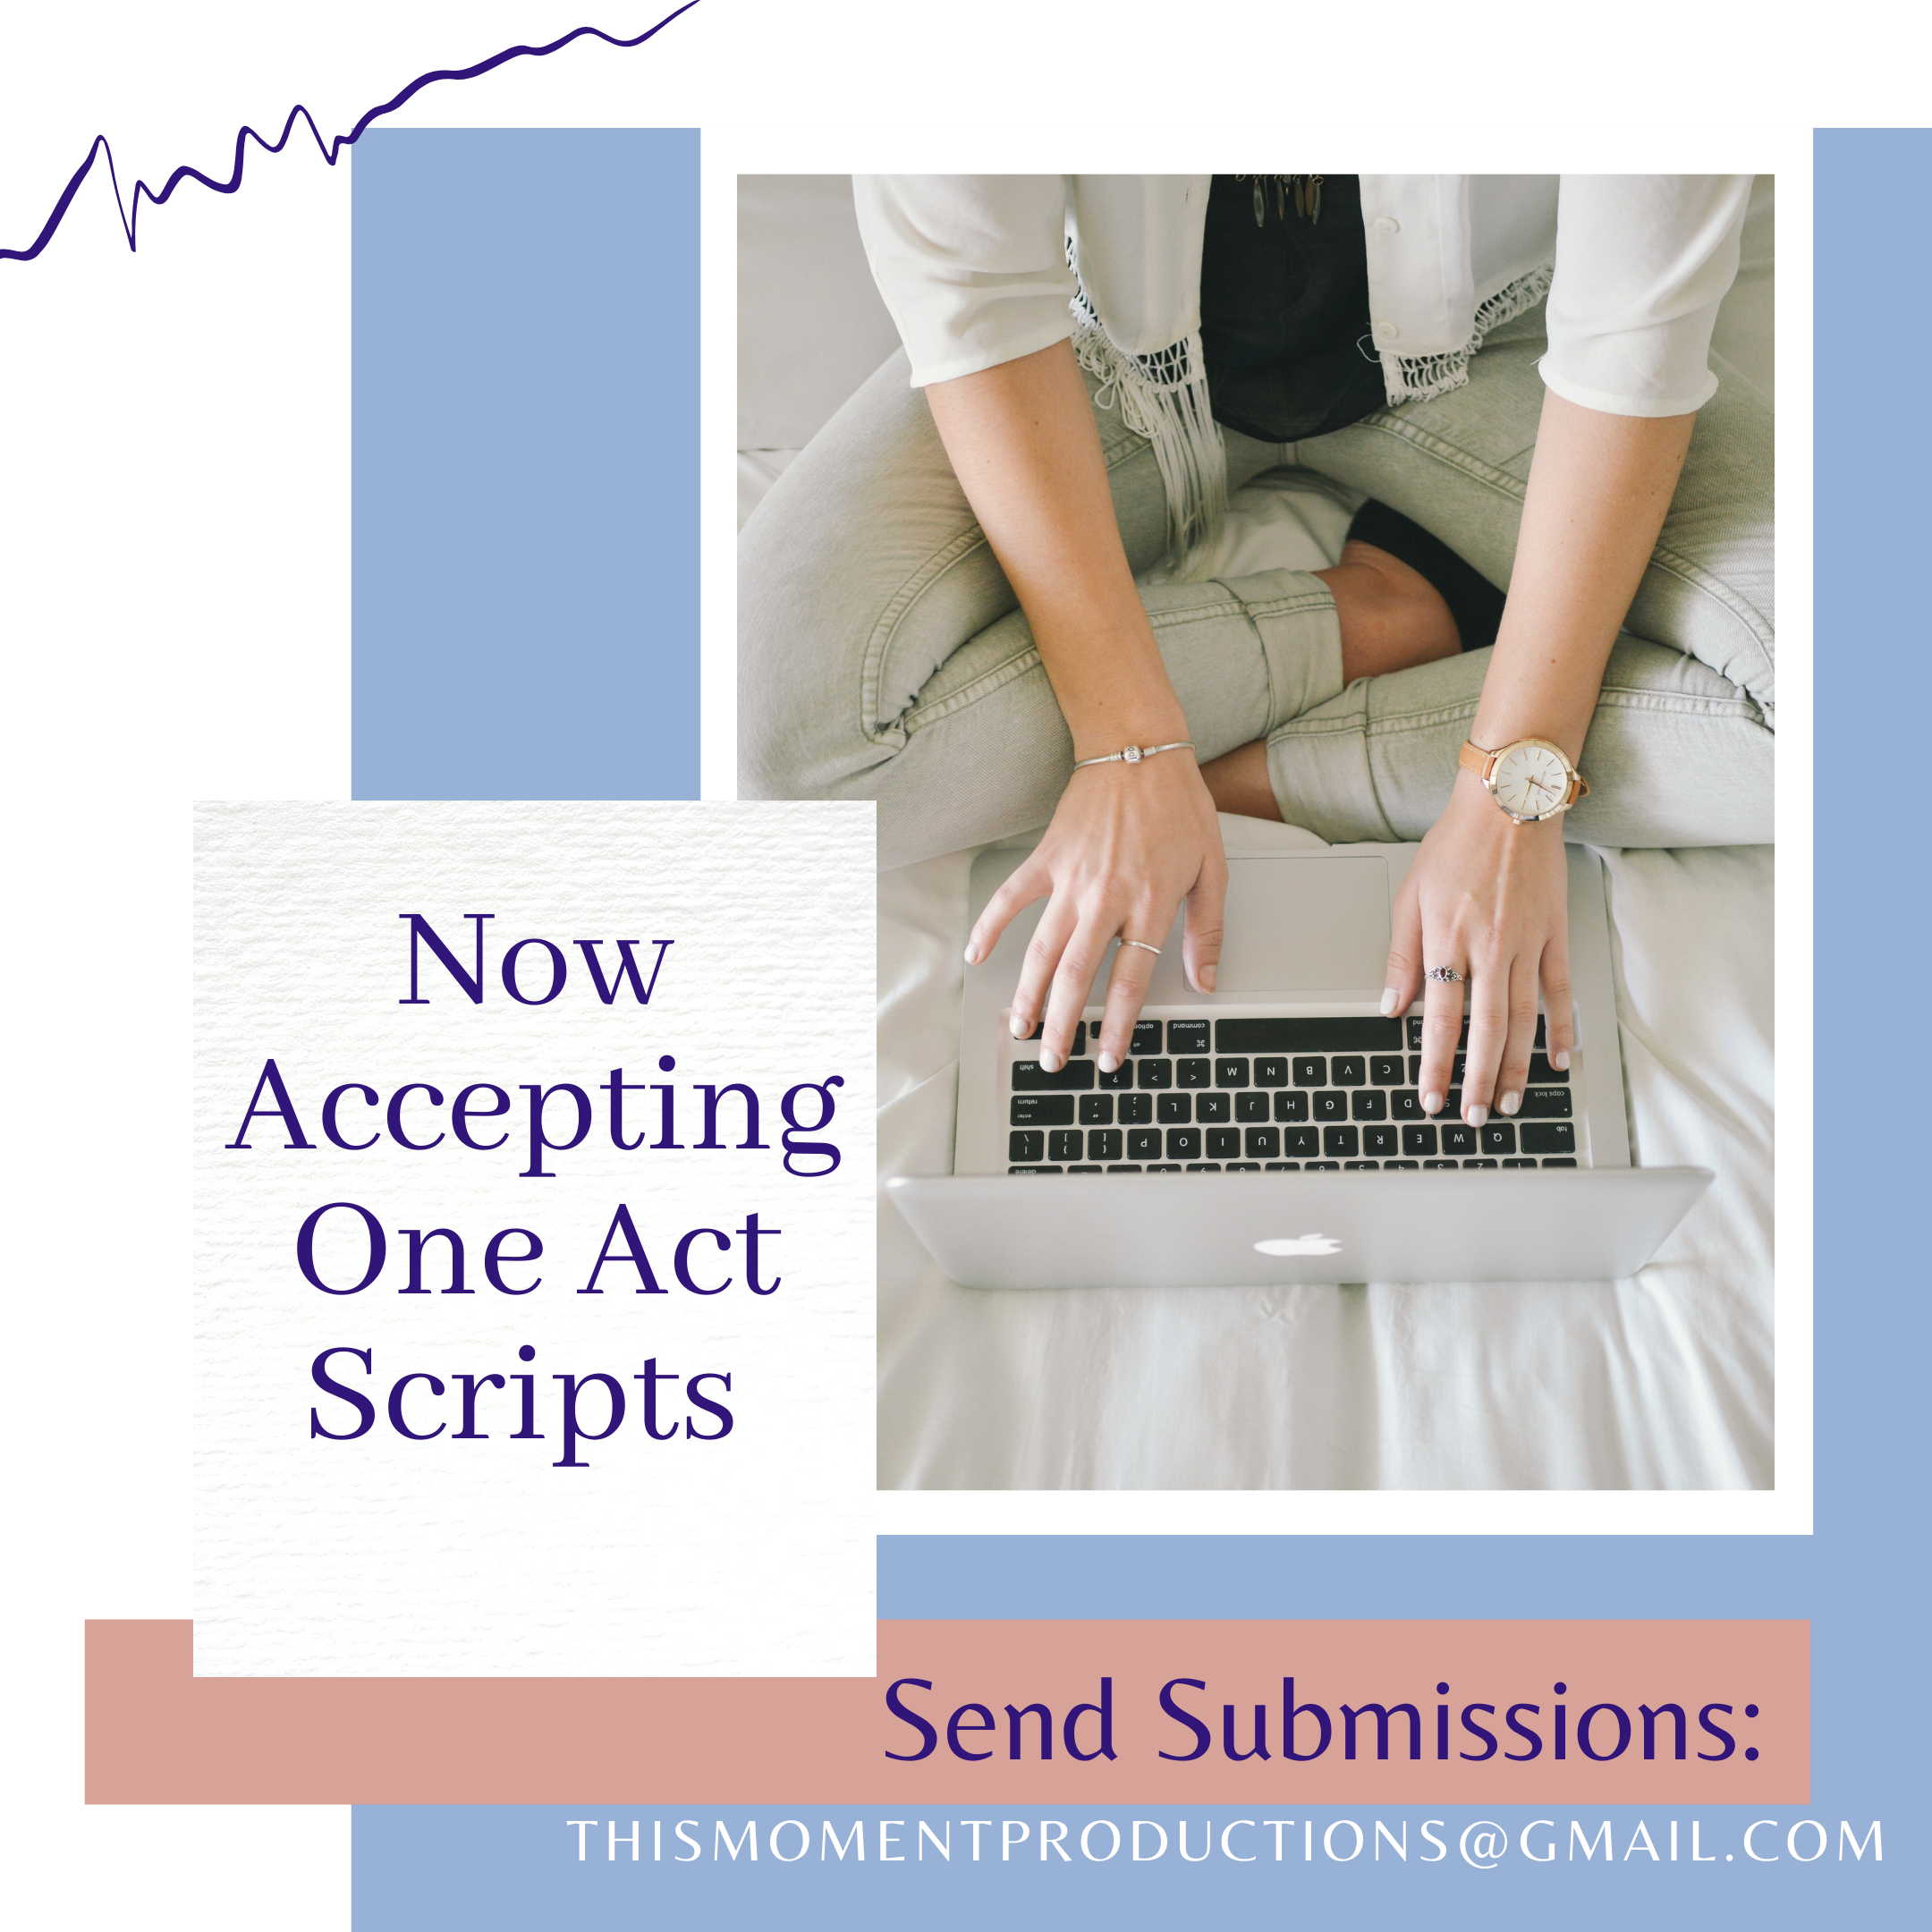 Submissions One Act